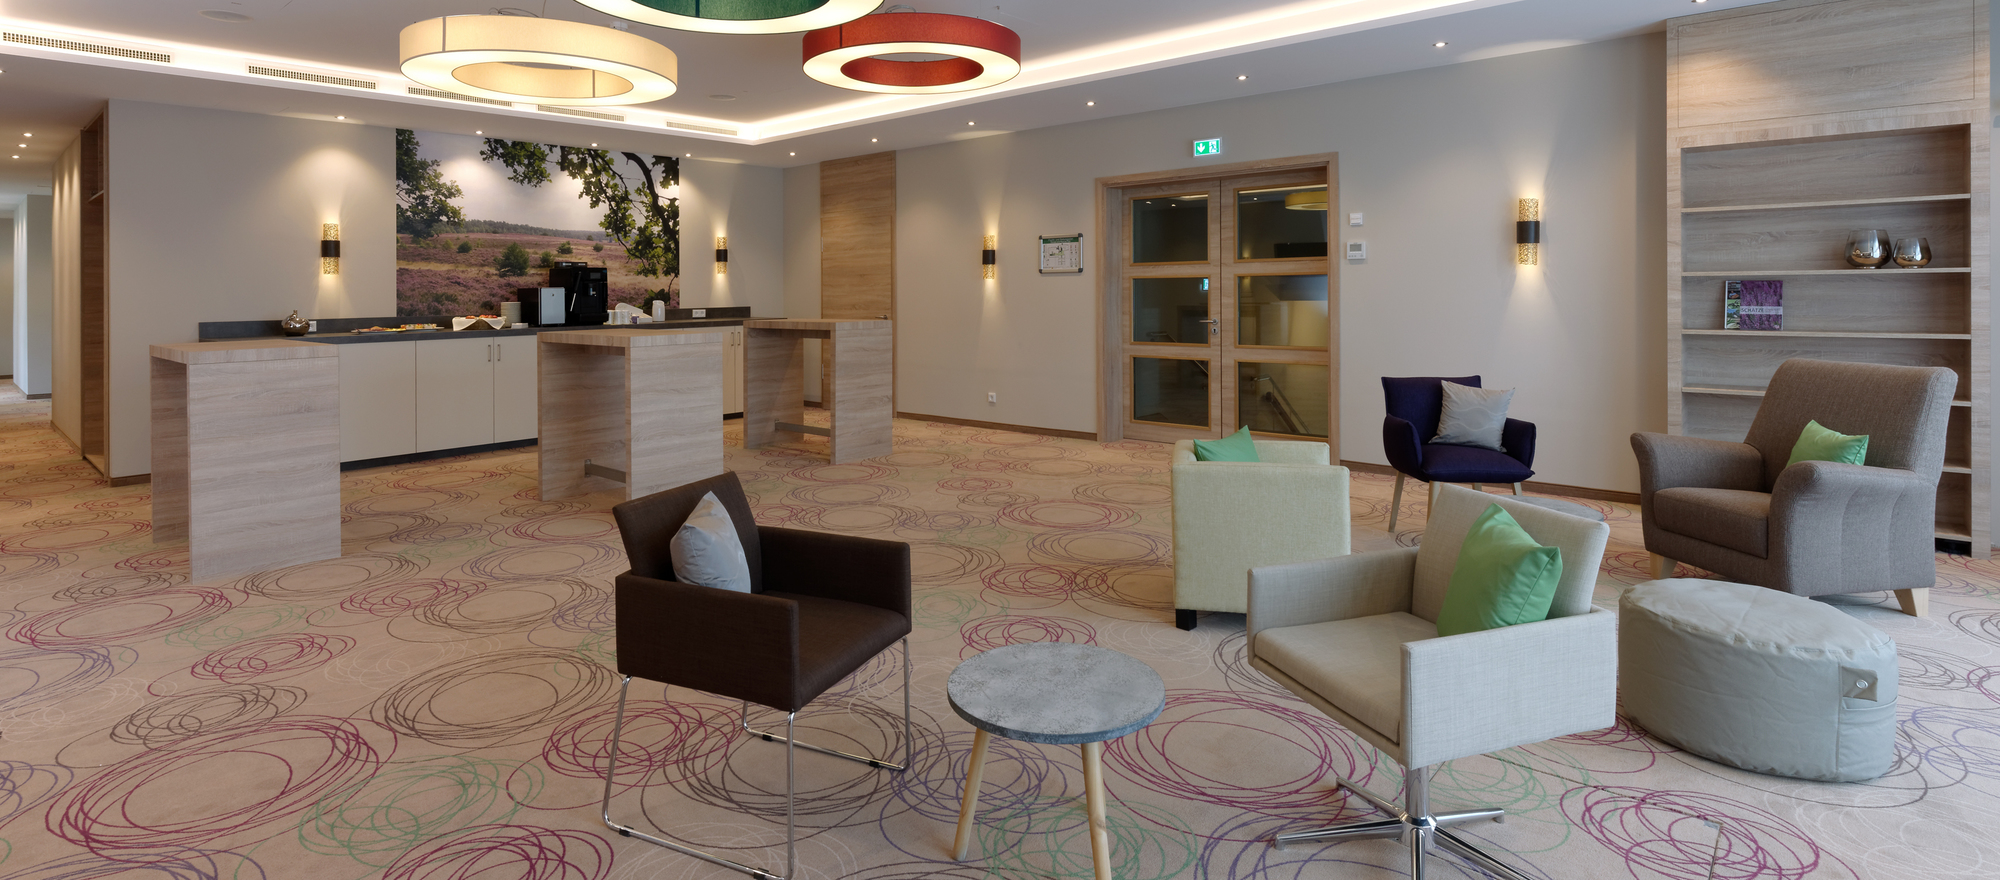 Conference lobby in the Ringhotel Sellhorn in Hanstedt, 4-stars hotel in de Lueneburg Heath